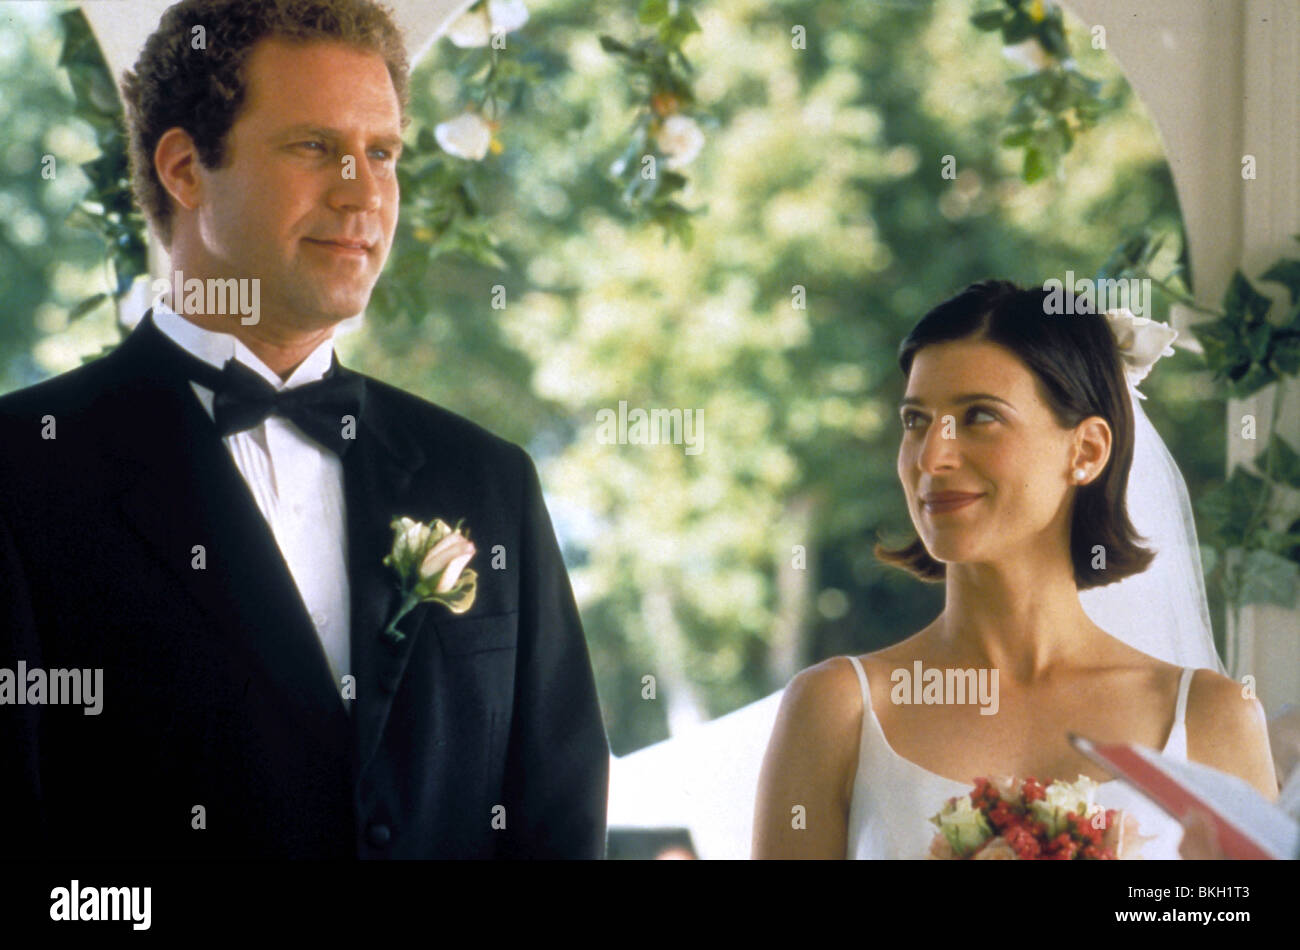 THE SUBURBANS (1999) WILL FERRELL SUBS 020 - Stock Image